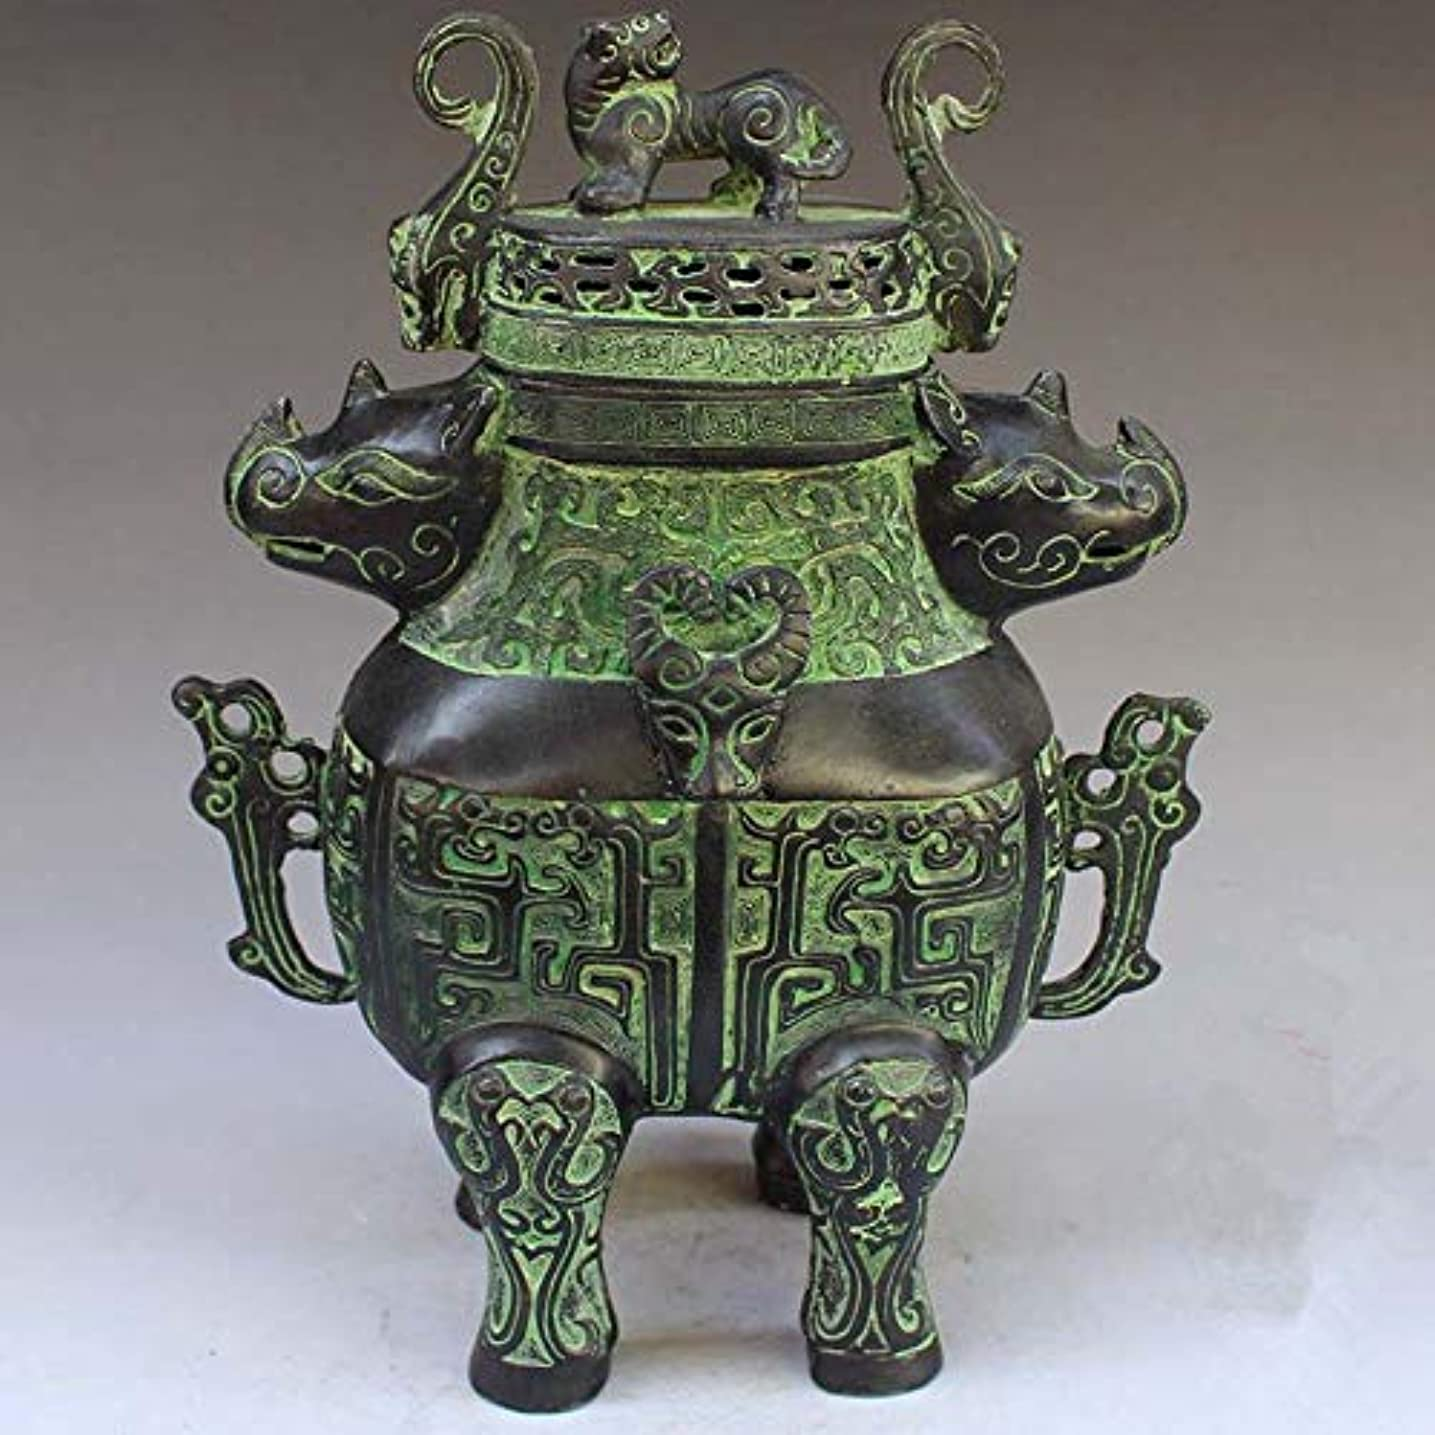 船上バスマーチャンダイジングChinese Bronze rhinoceros head beast head incense burner statue